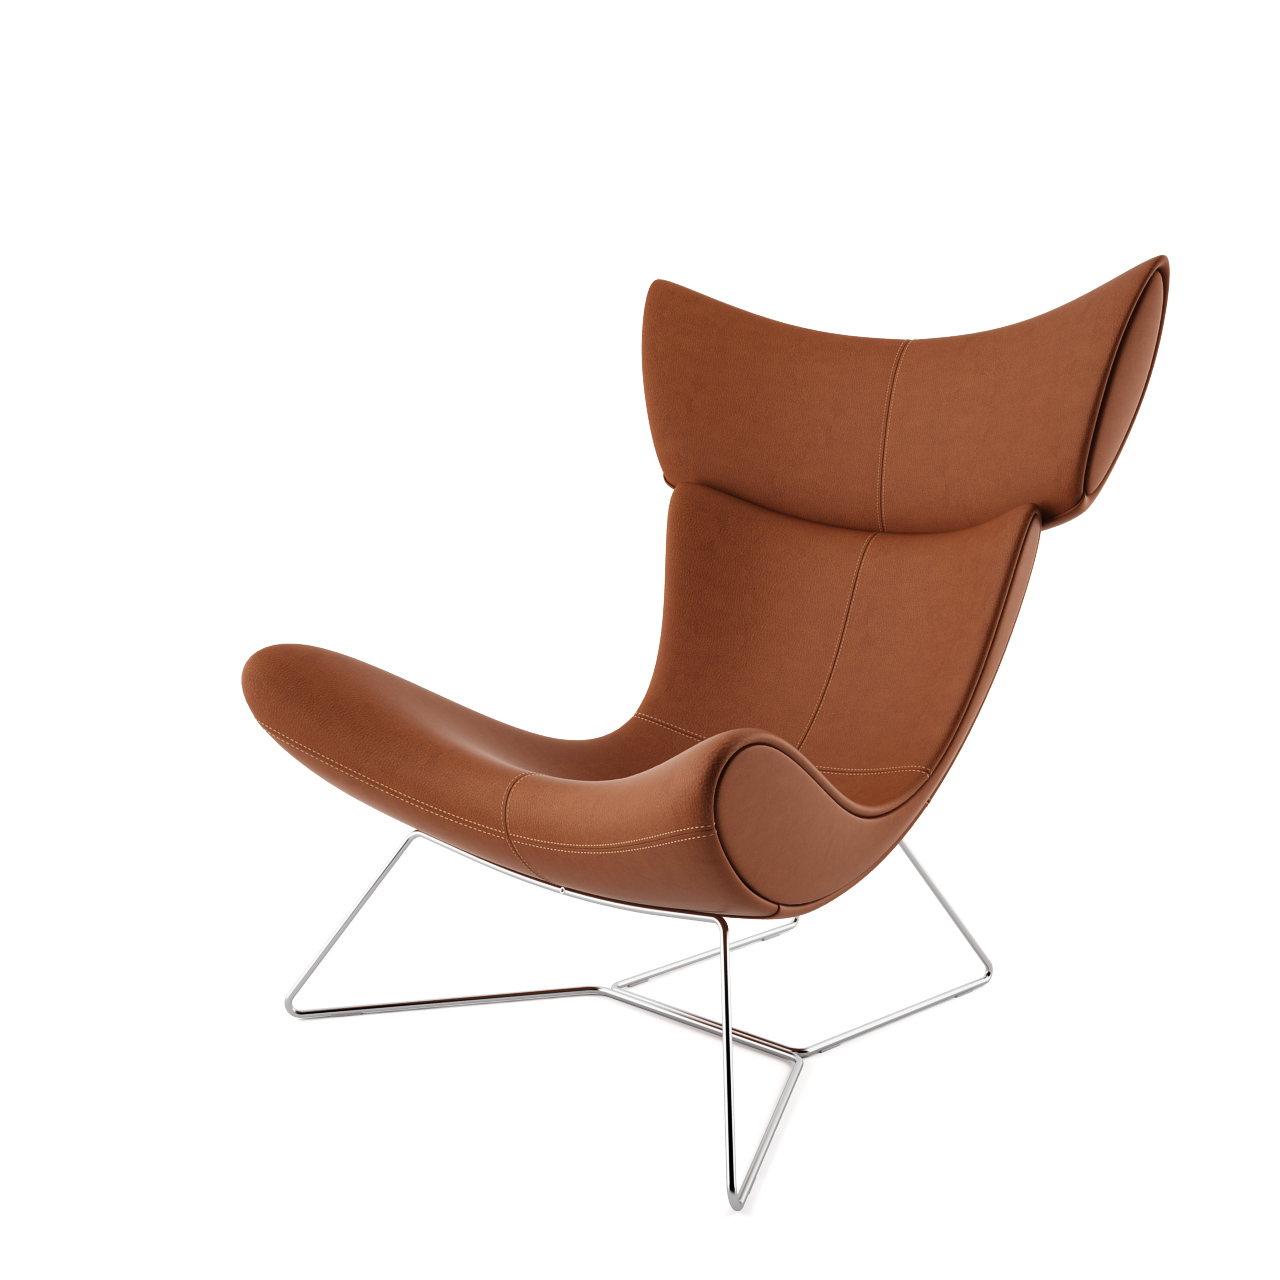 Imola Chair by BoConcept - Dimensiva